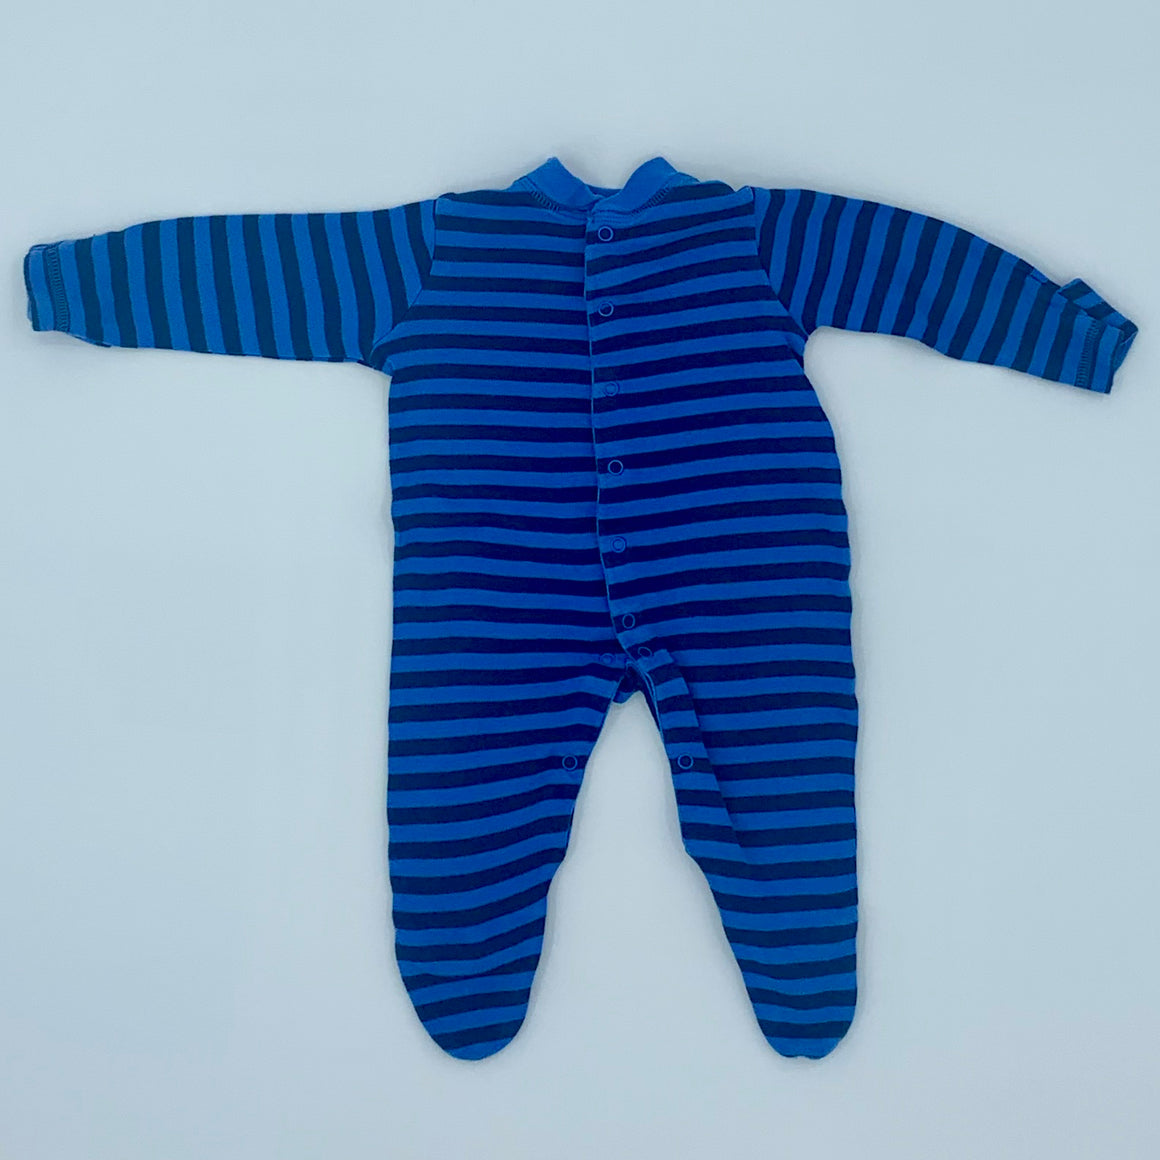 Gently Worn John Lewis blue striped sleepsuit size 0-3 months